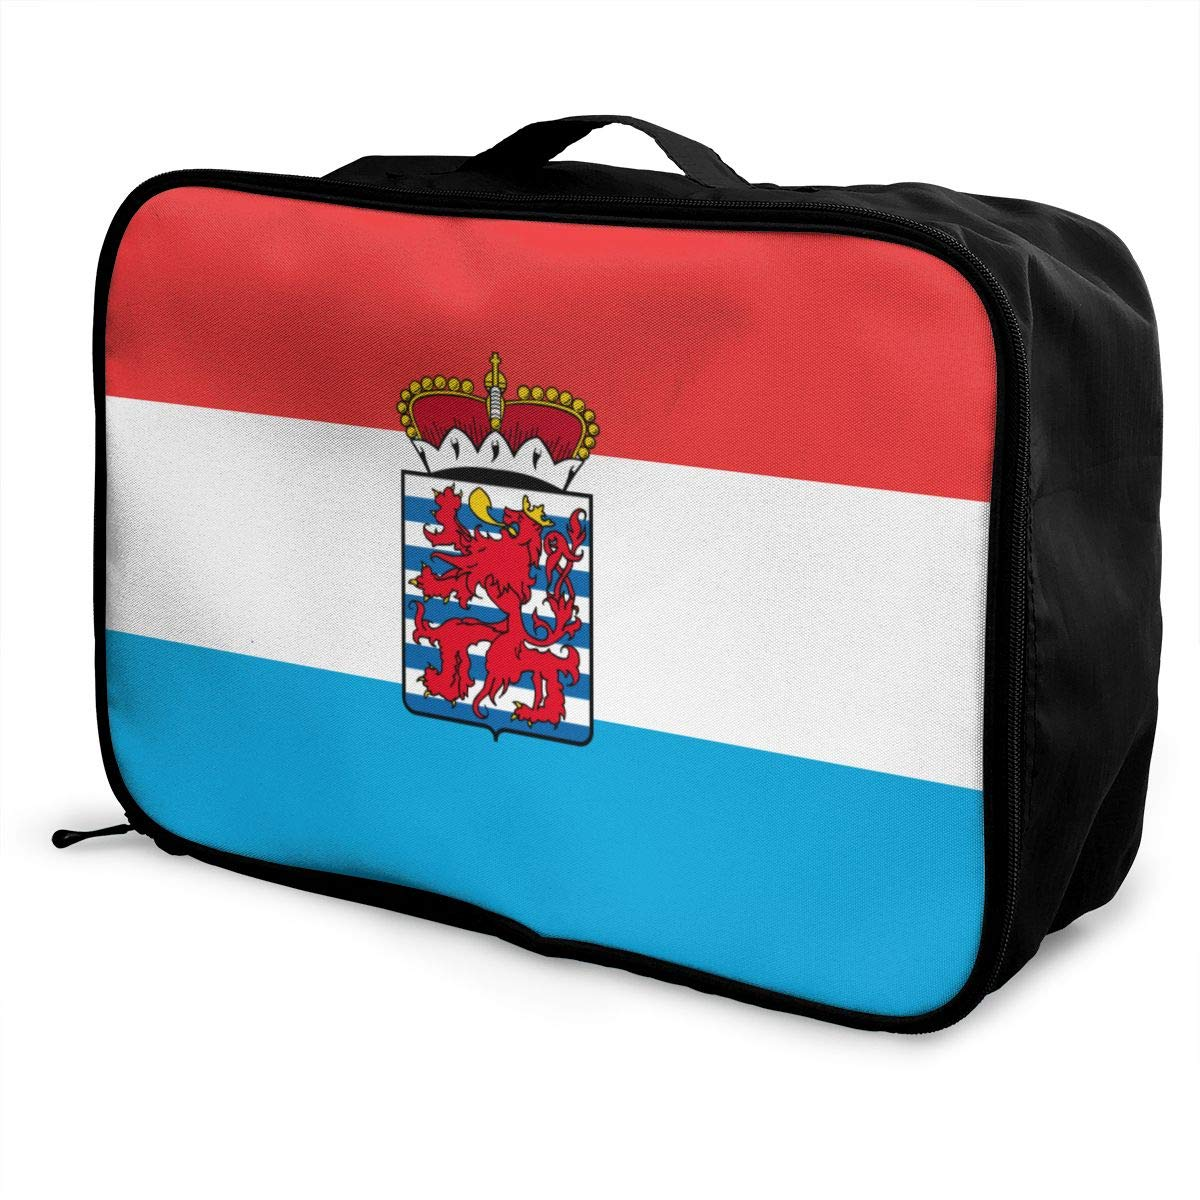 Unisex Travel Duffel Bag Waterproof Fashion Lightweight Large Capacity Portable Luggage Bag Flag Of The Province Of Luxembourg